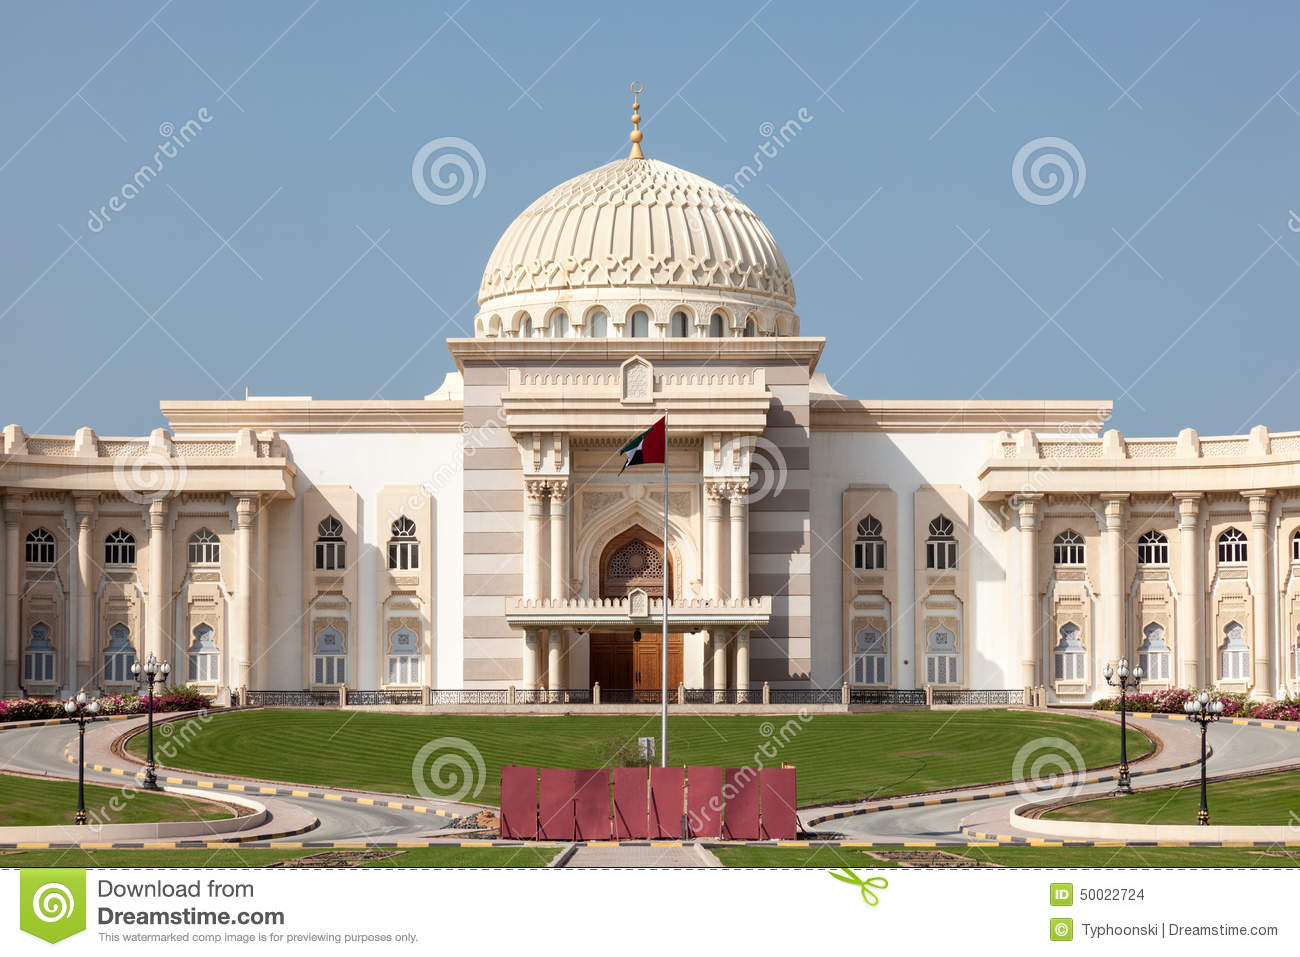 Government building in the city of Sharjah